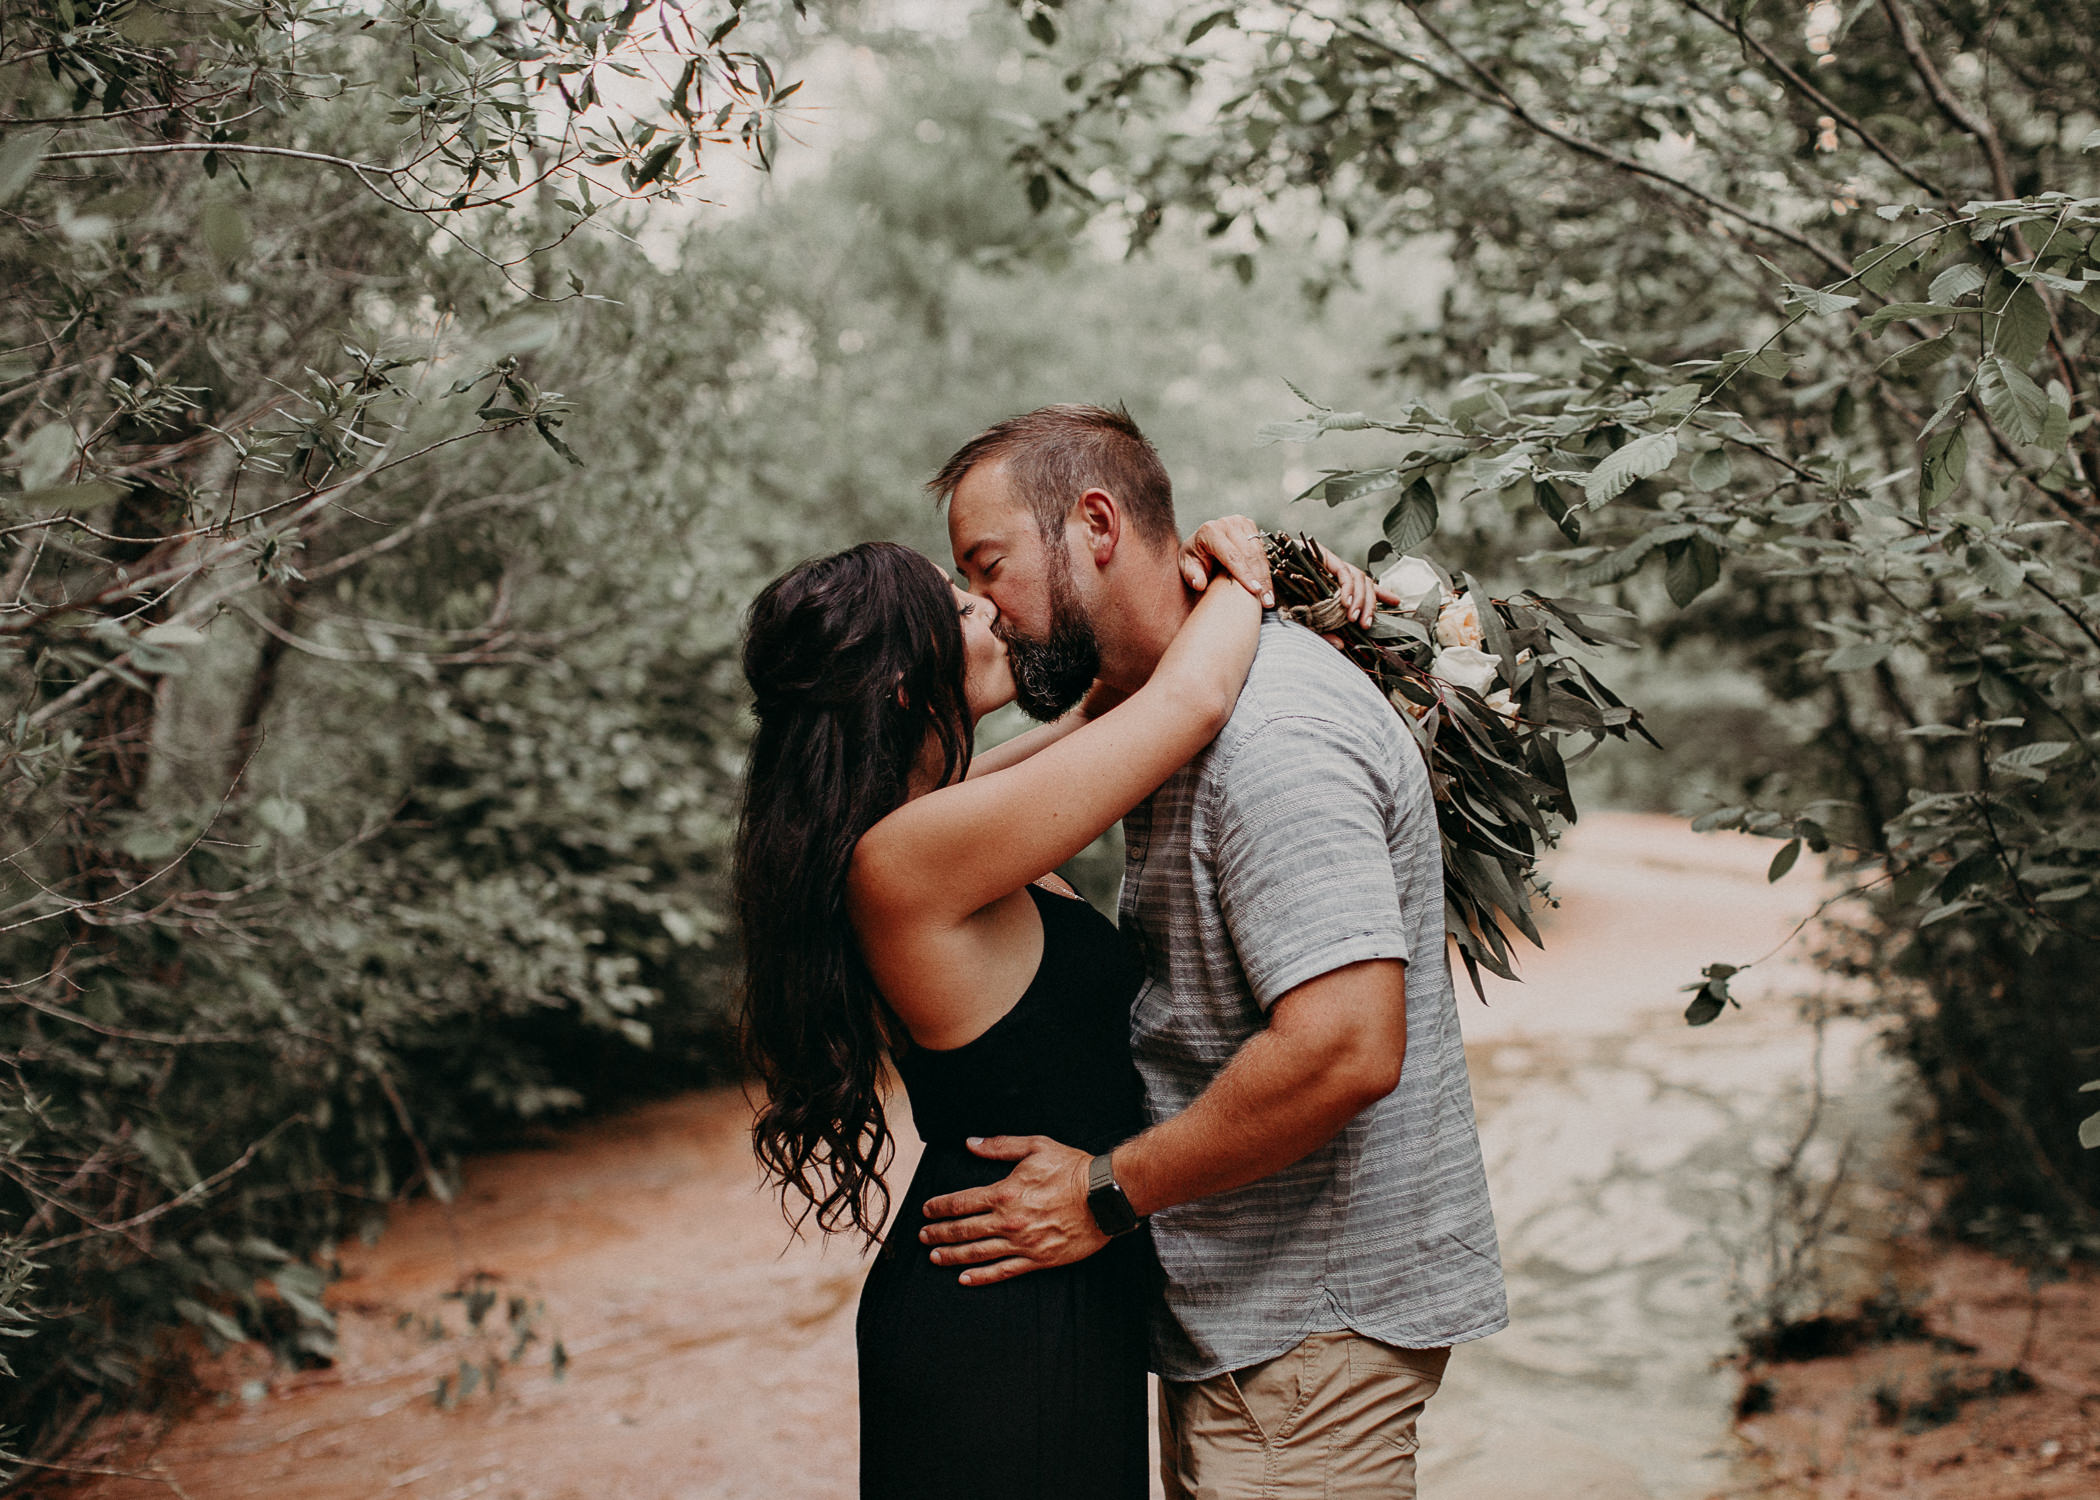 7- providence canyon georgia -engagement-session-atlanta-wedding-photographer, Aline Marin Photography.jpg